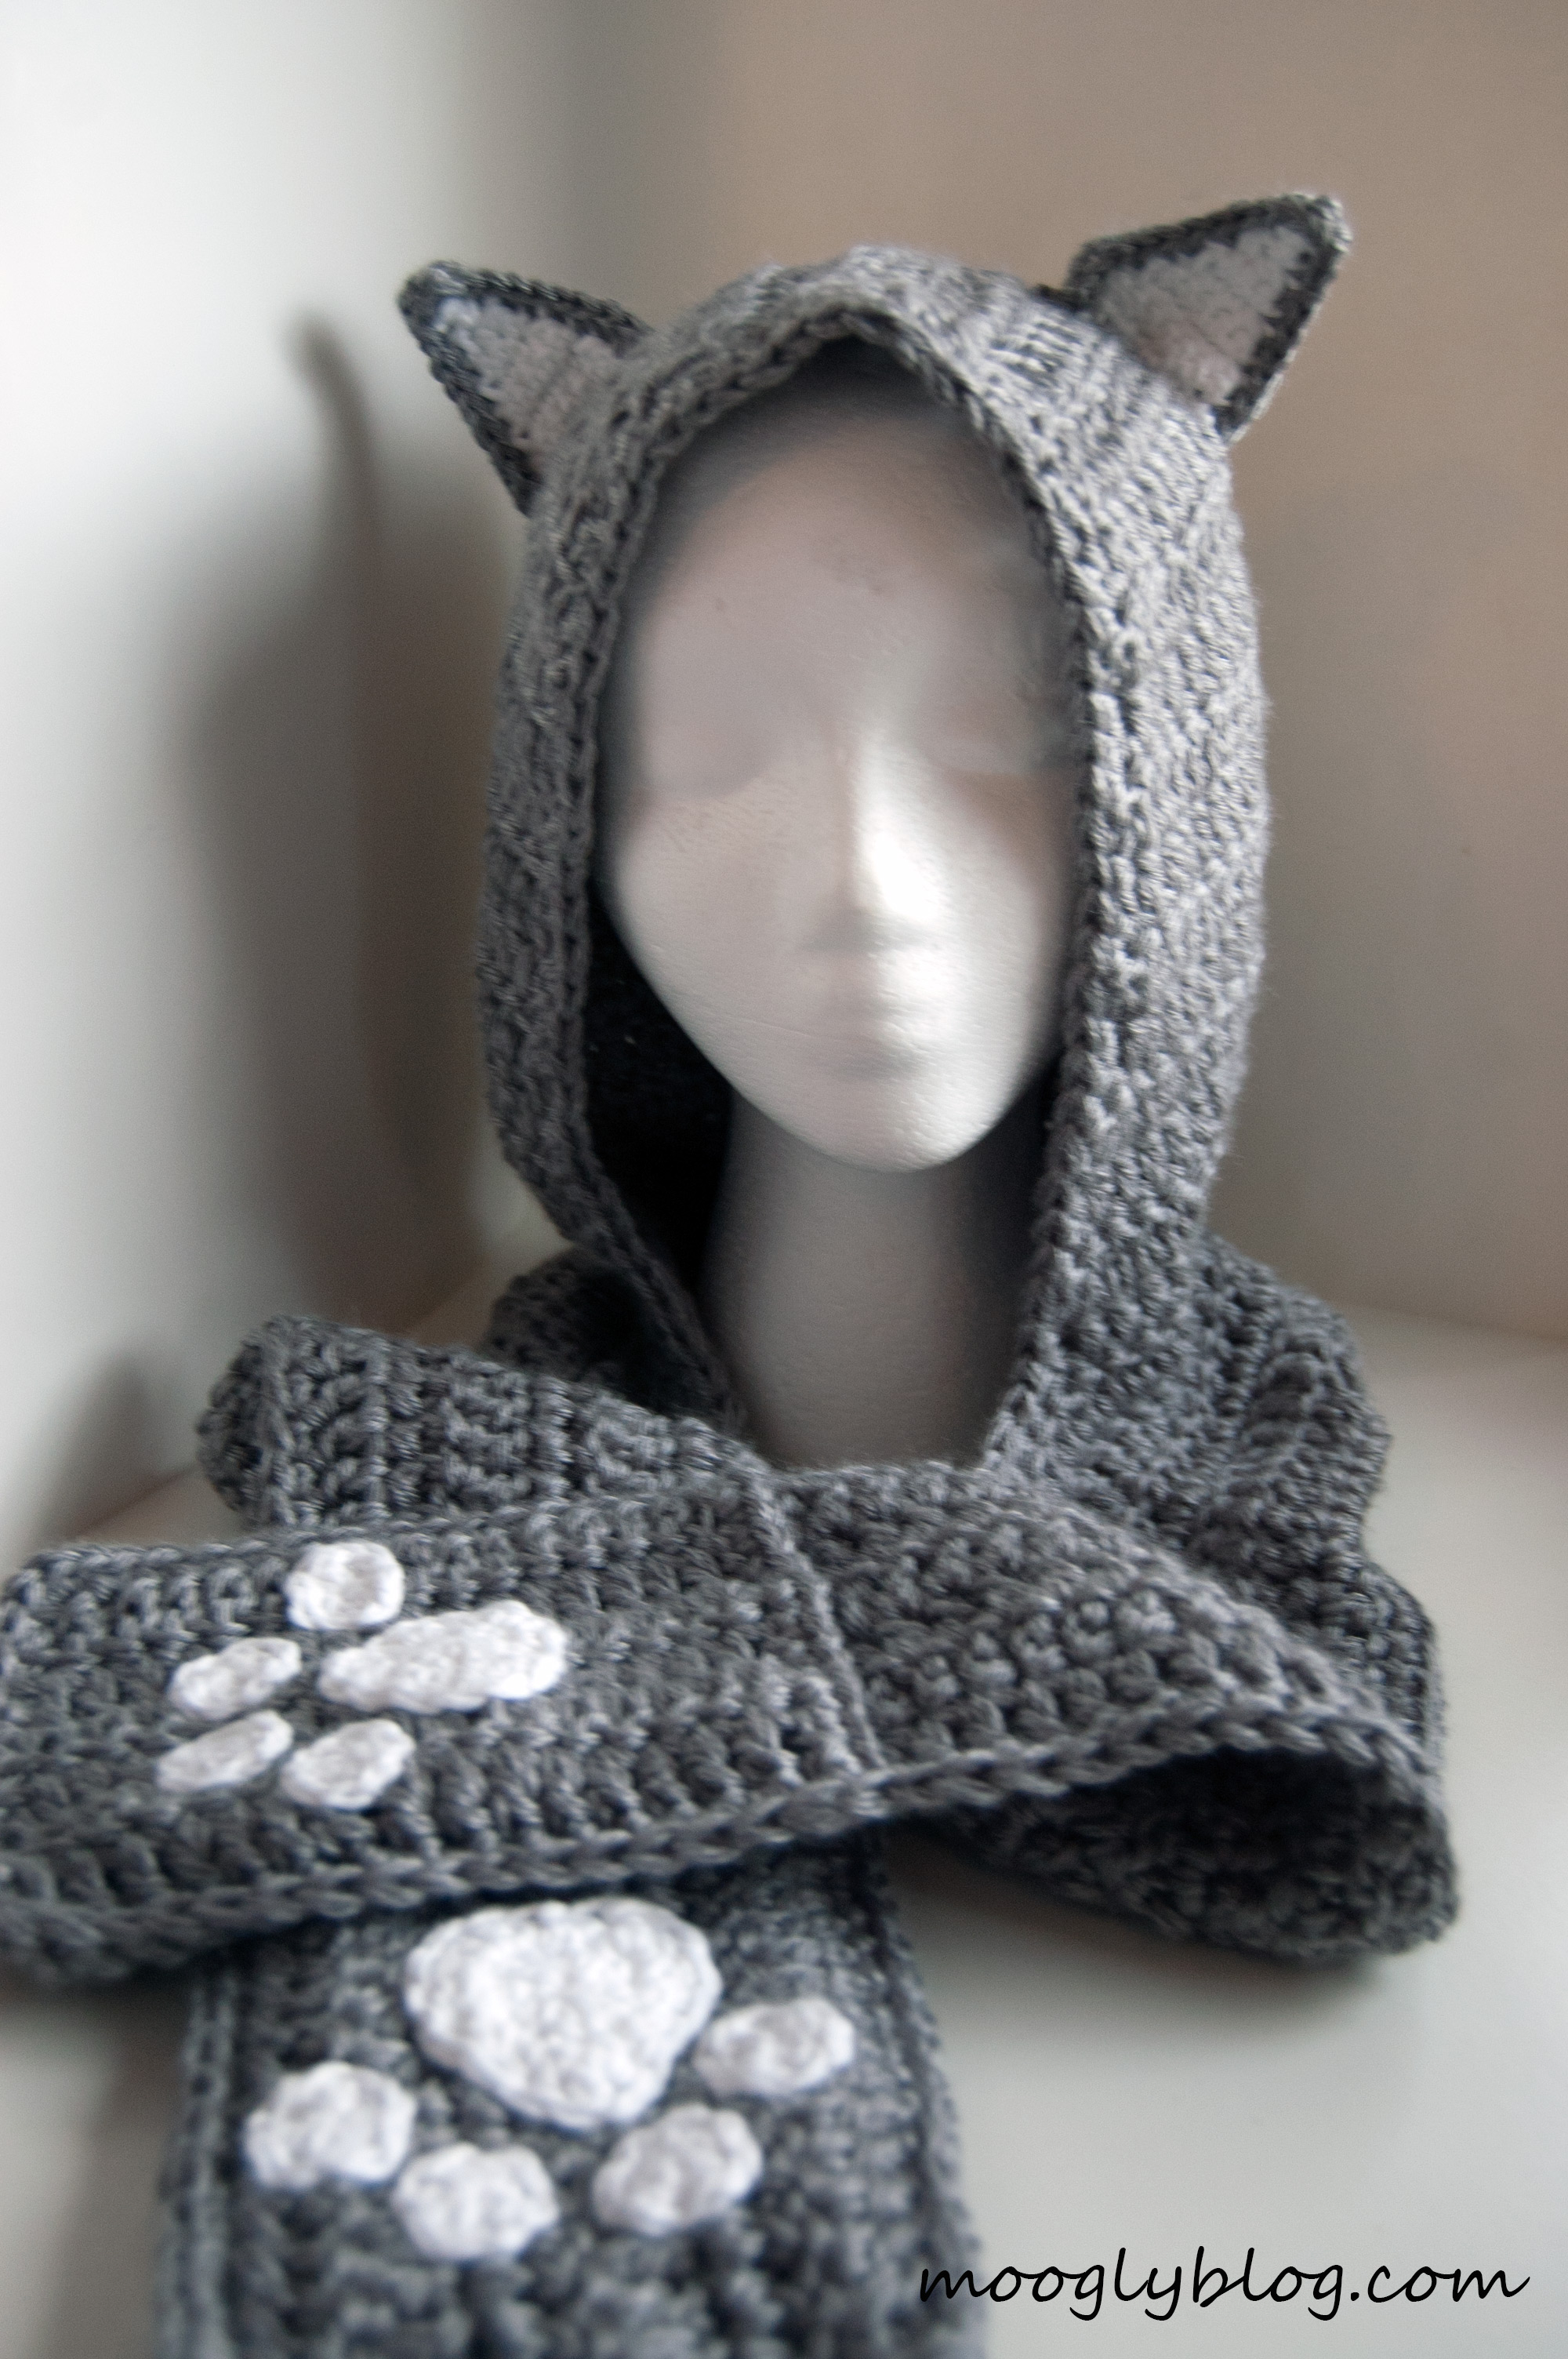 10+ Crochet Hooded Scarves and Cowls Patterns